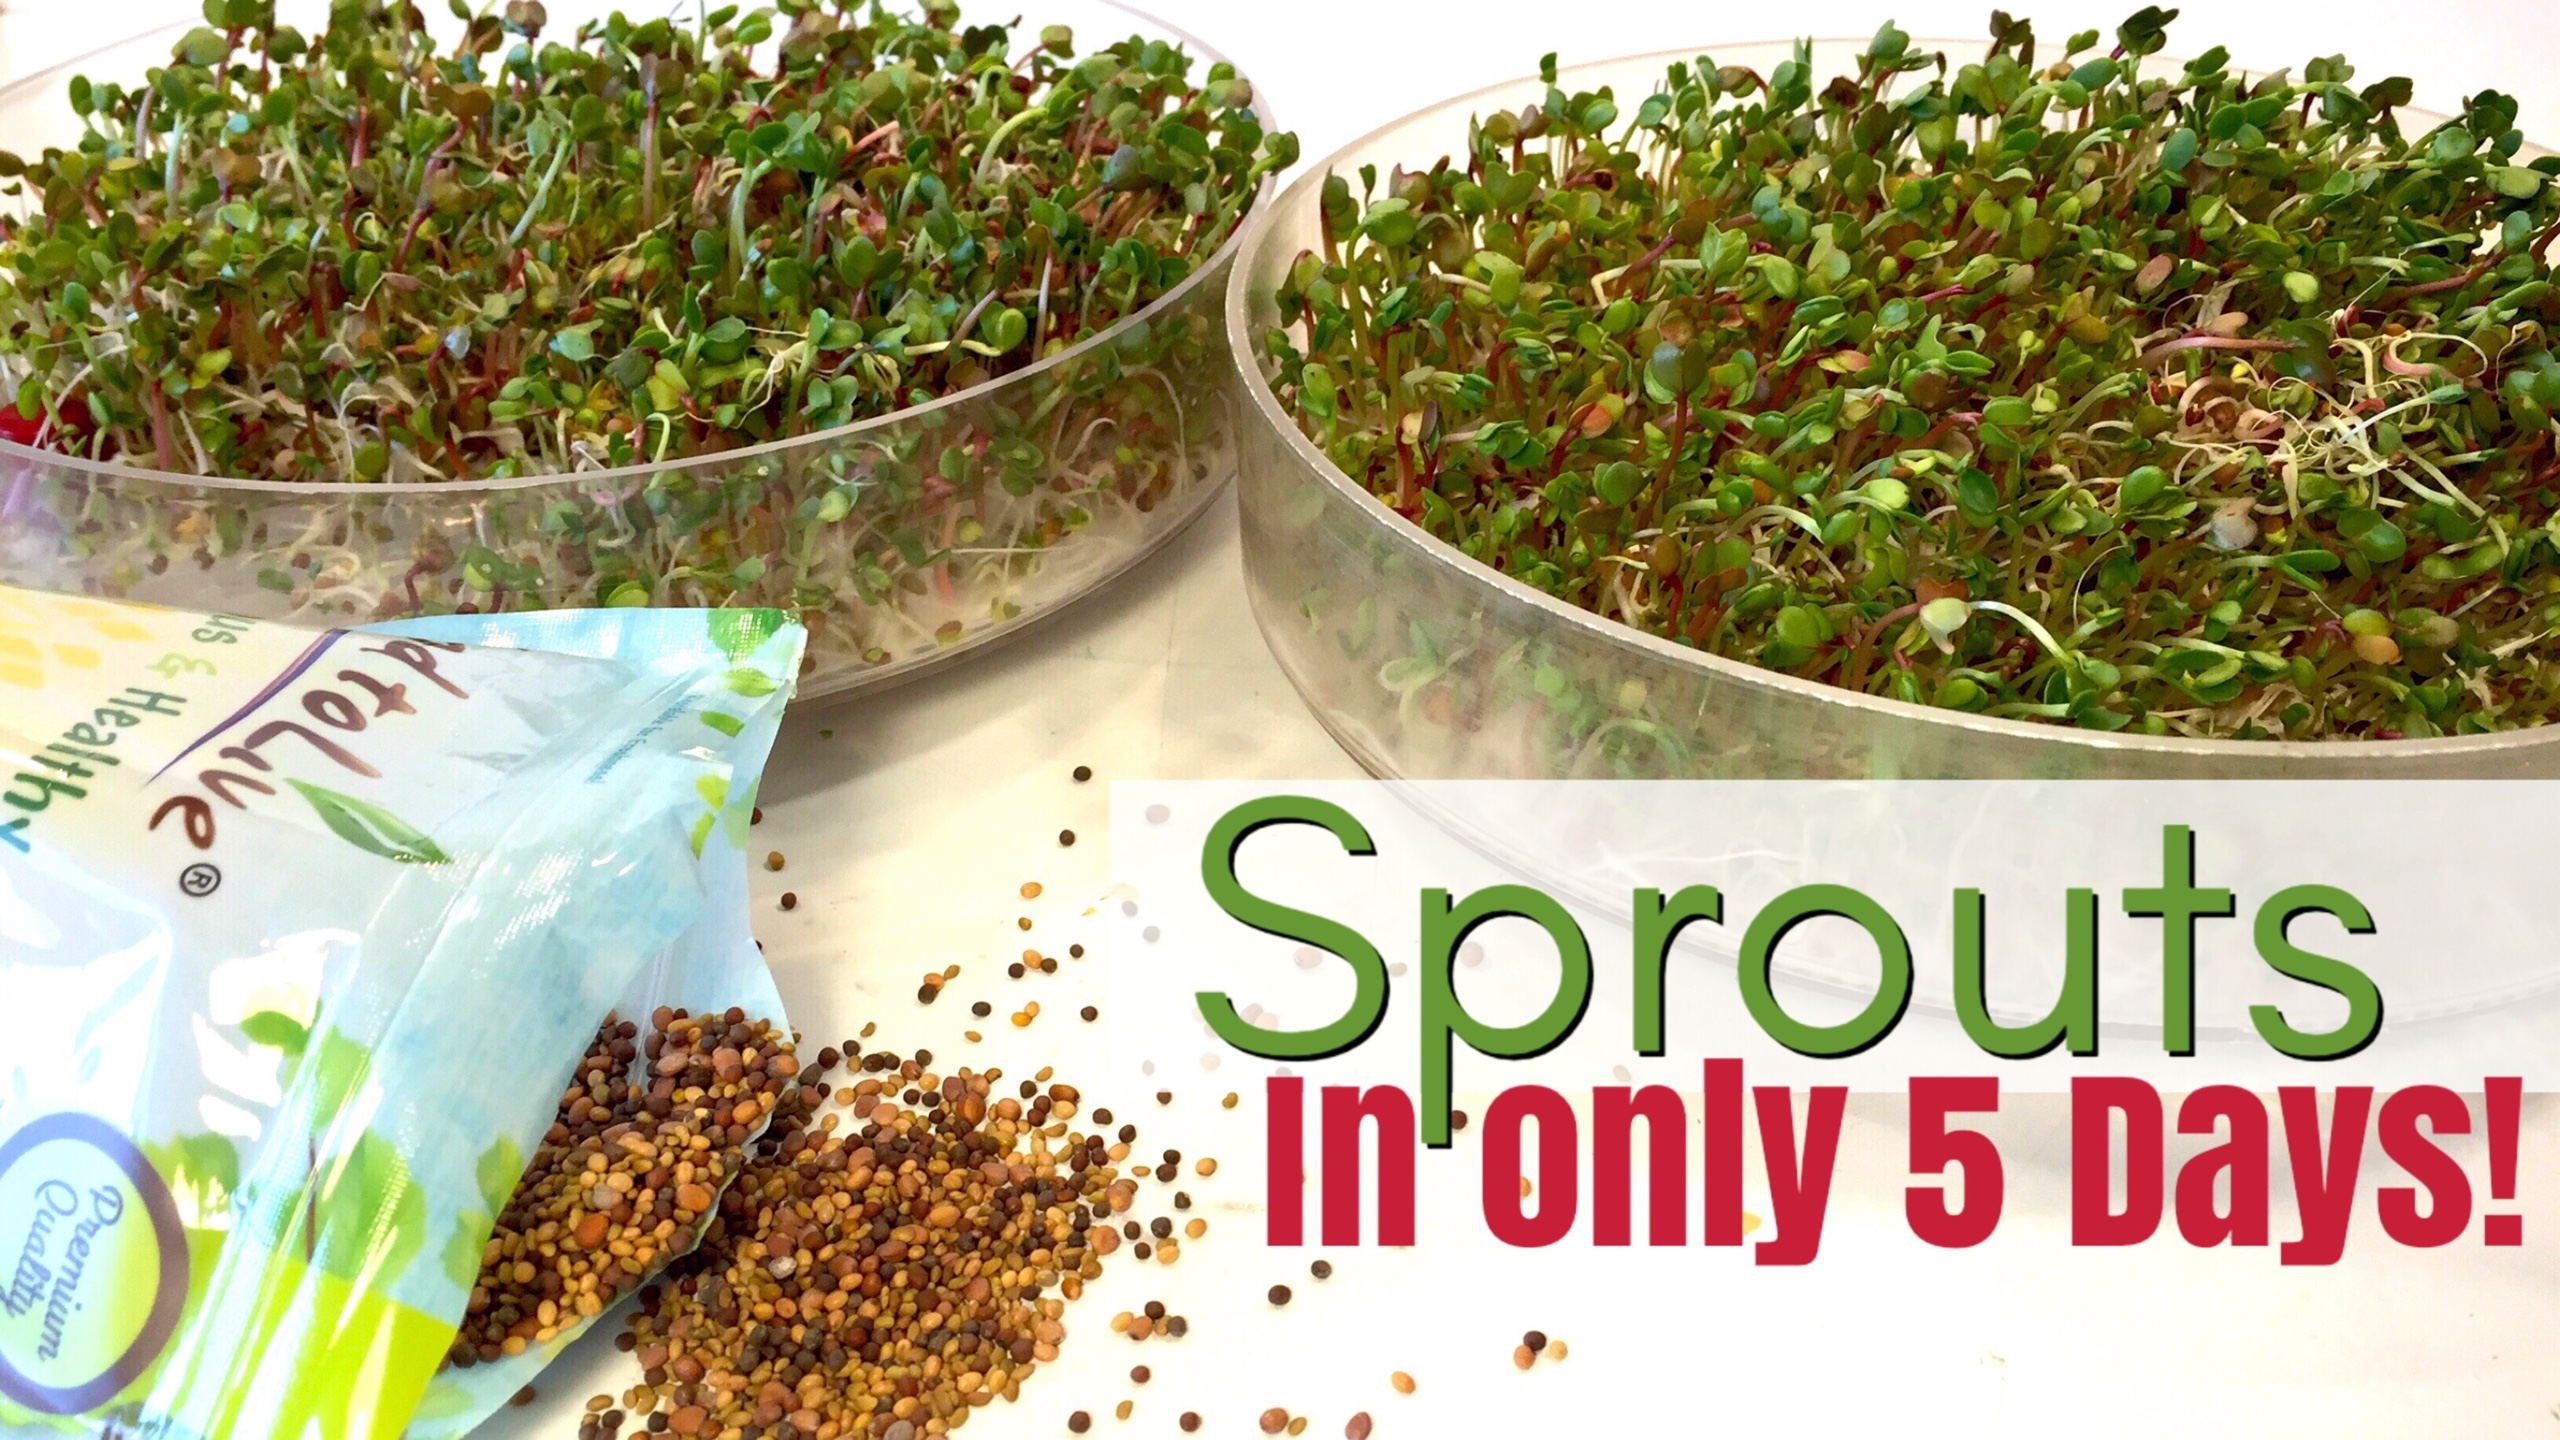 HOW TO GROW SPROUTS FOR BEGINNERS